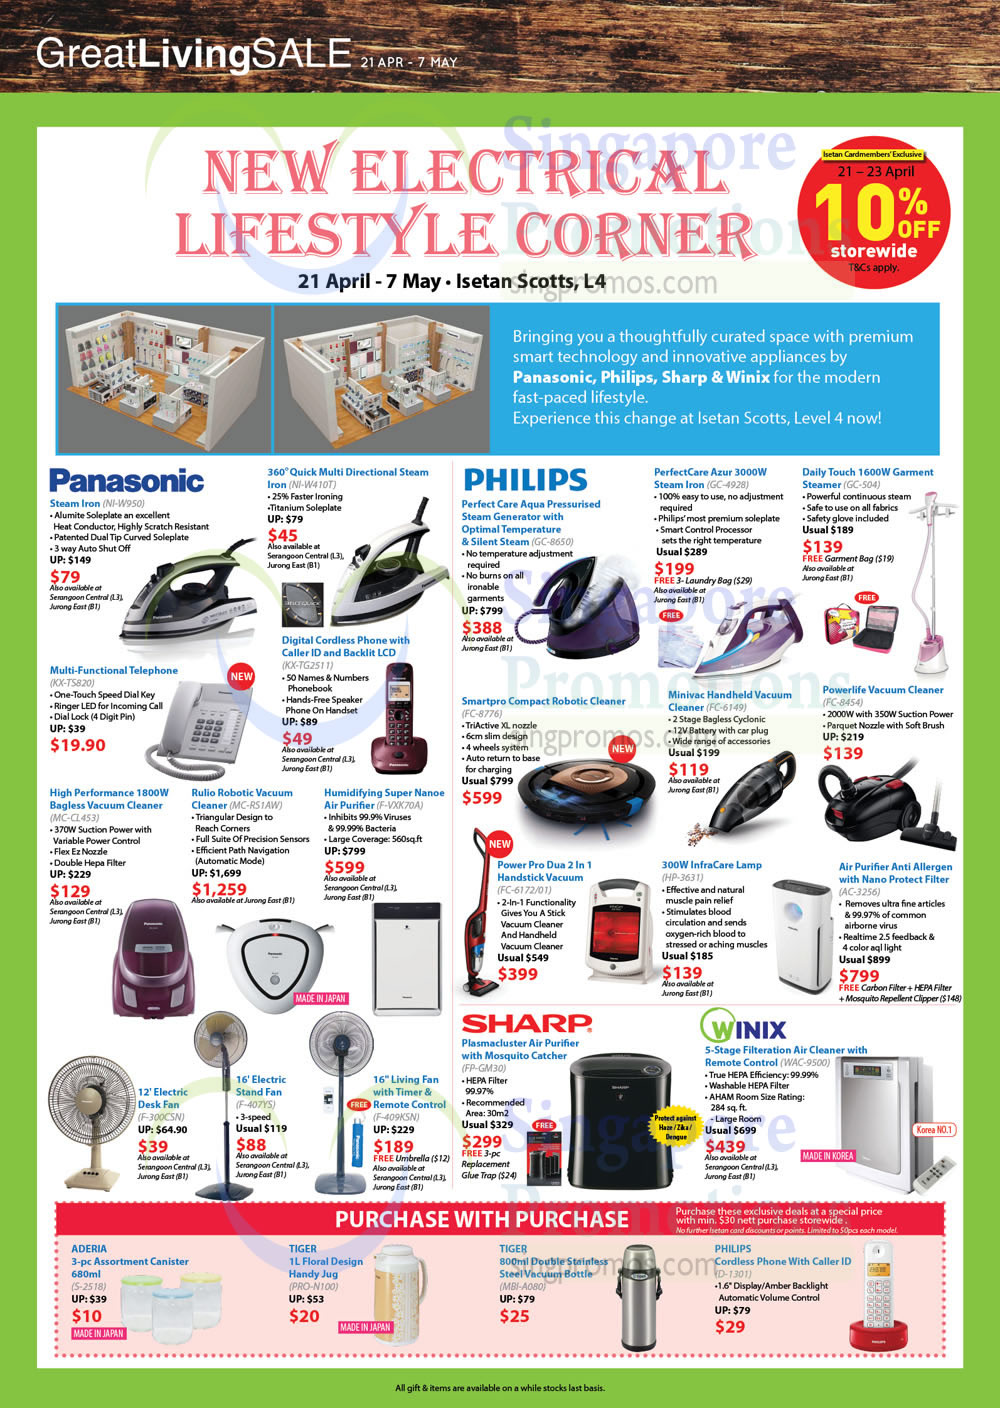 Panasonic, Philips, Iron, Vacuum Cleaner, Telephone, Fan